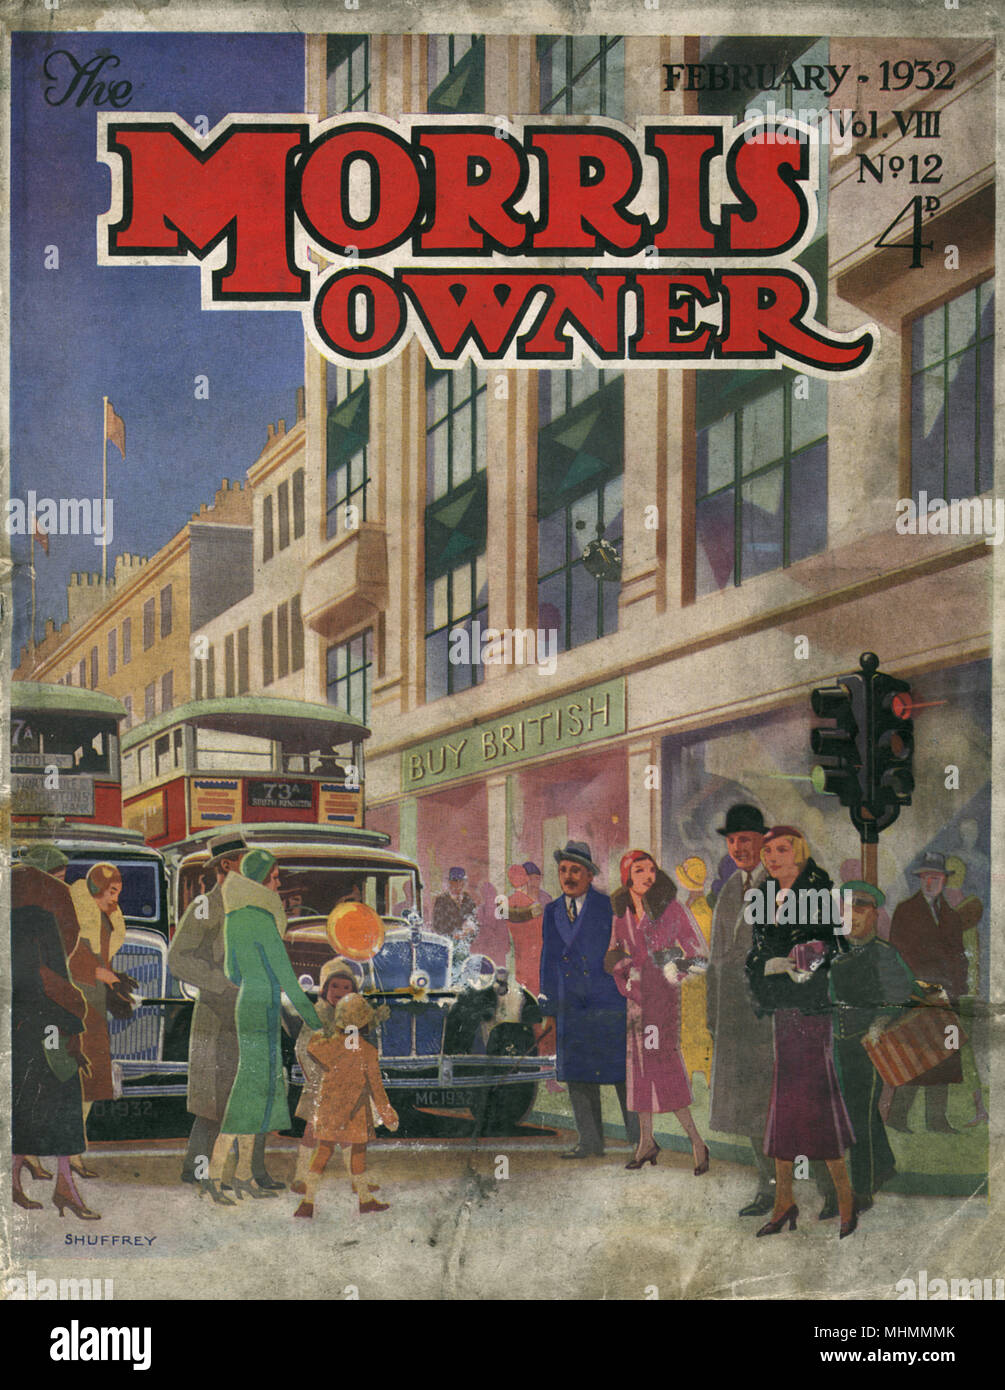 Front cover of The Morris Owner magazine from 1932, with a lovely illustration featuring a busy road on a high street populated with shoppers.  As cars and buses stop at traffic lights and wait for pedestrians to cross, a modern looking department store in the background exhorts the public to 'Buy British.'     Date: 1932 - Stock Image